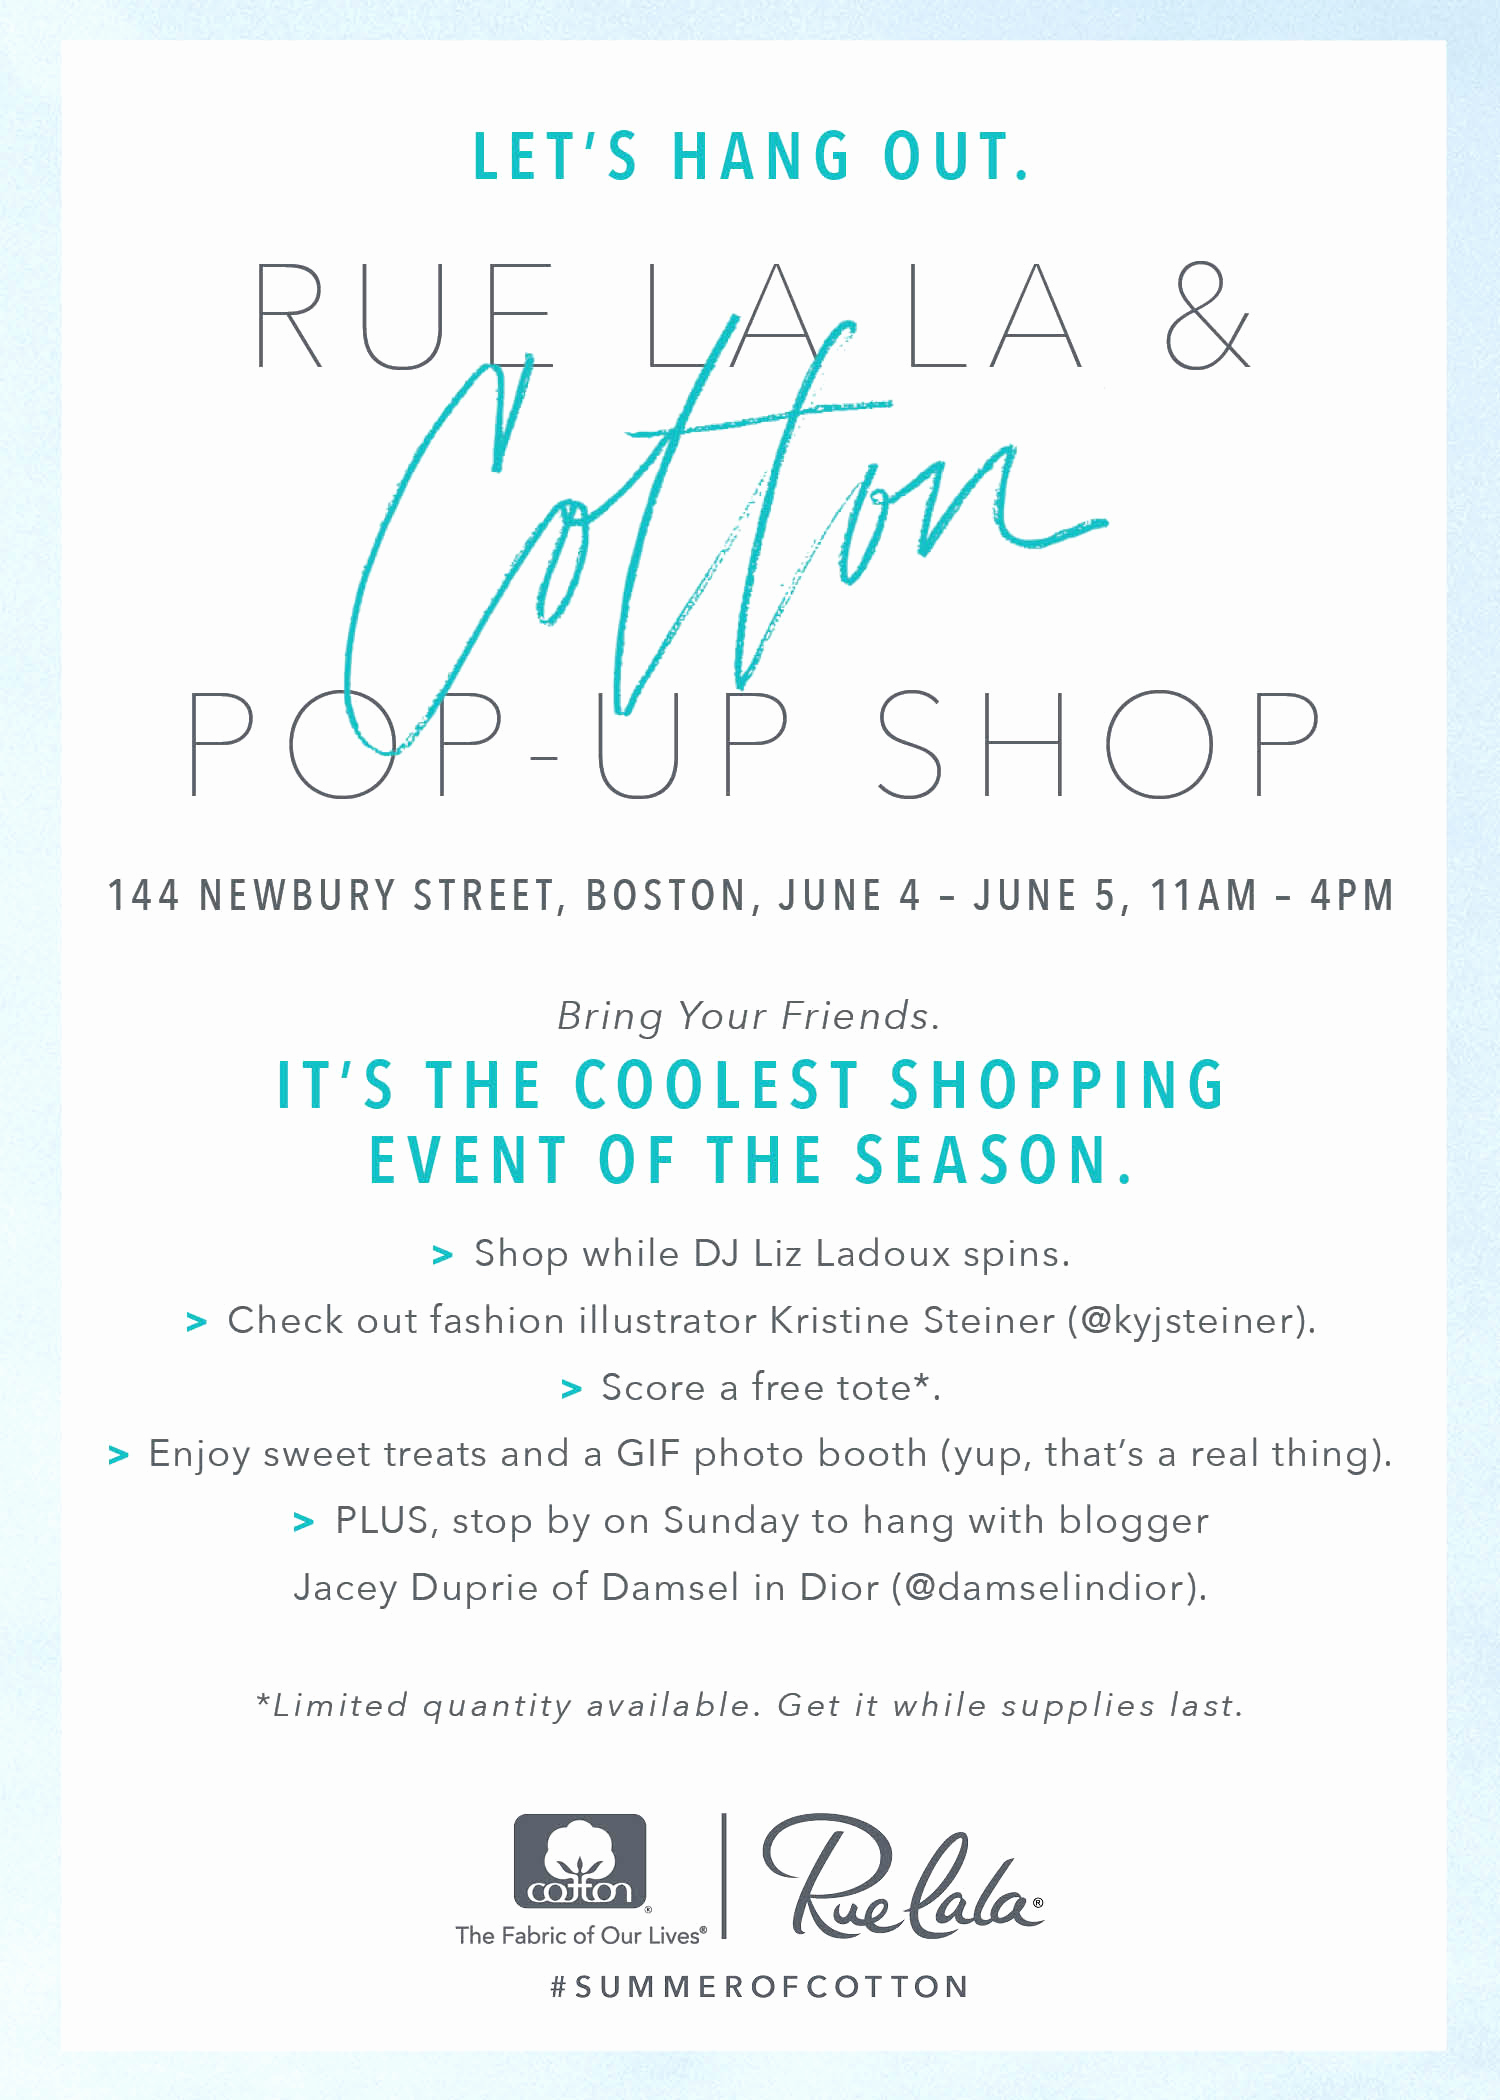 Pop Up Shop Invitation Awesome You're Invited to Rue S First Ever Cotton Pop Up Shop